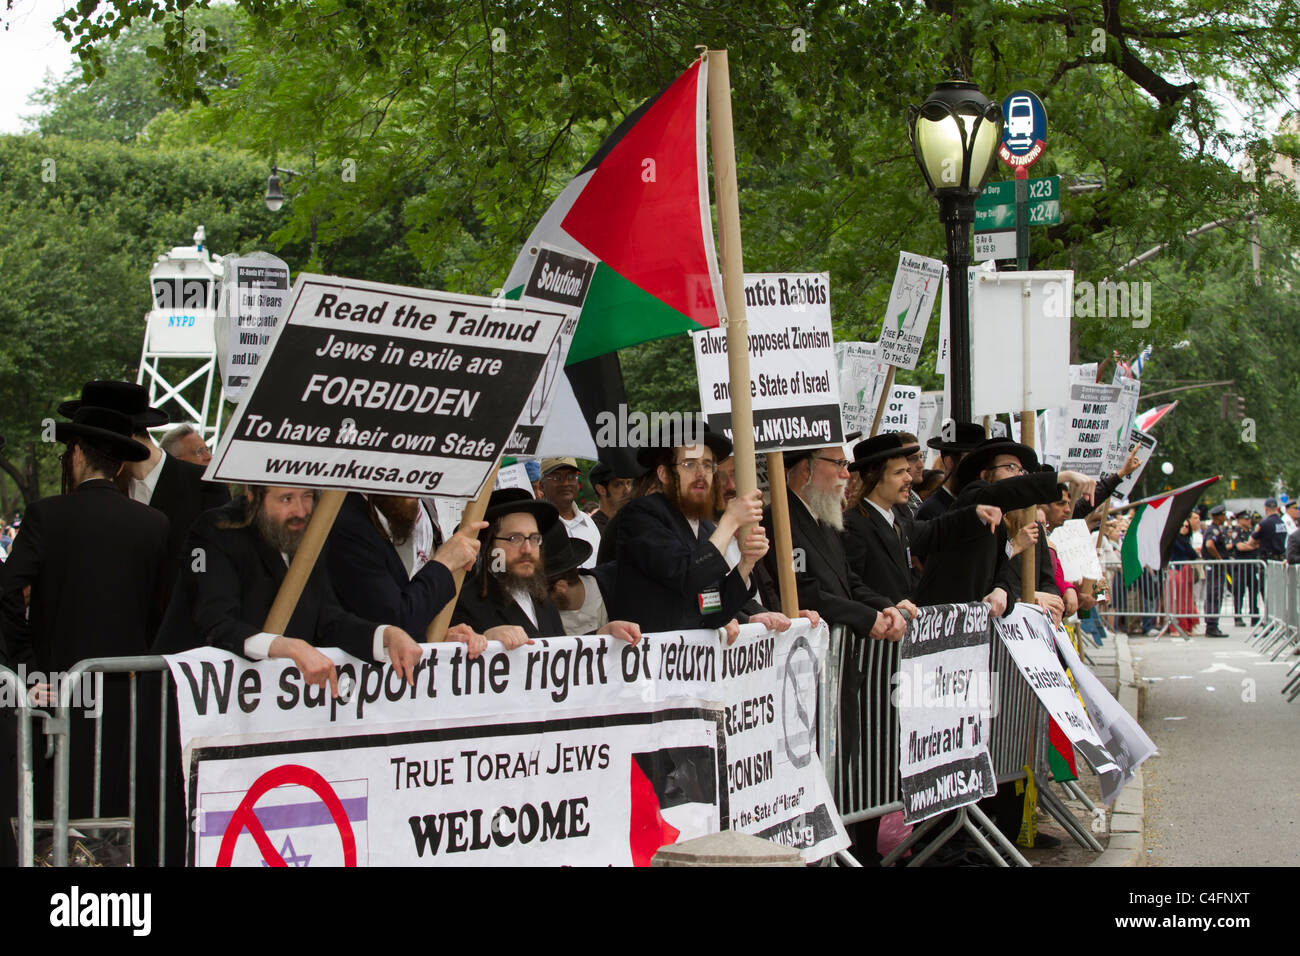 Anti-Israel protesters heckle marchers in the 2011 Celebrate Israel Parade on Fifth Avenue in New York City on June - Stock Image